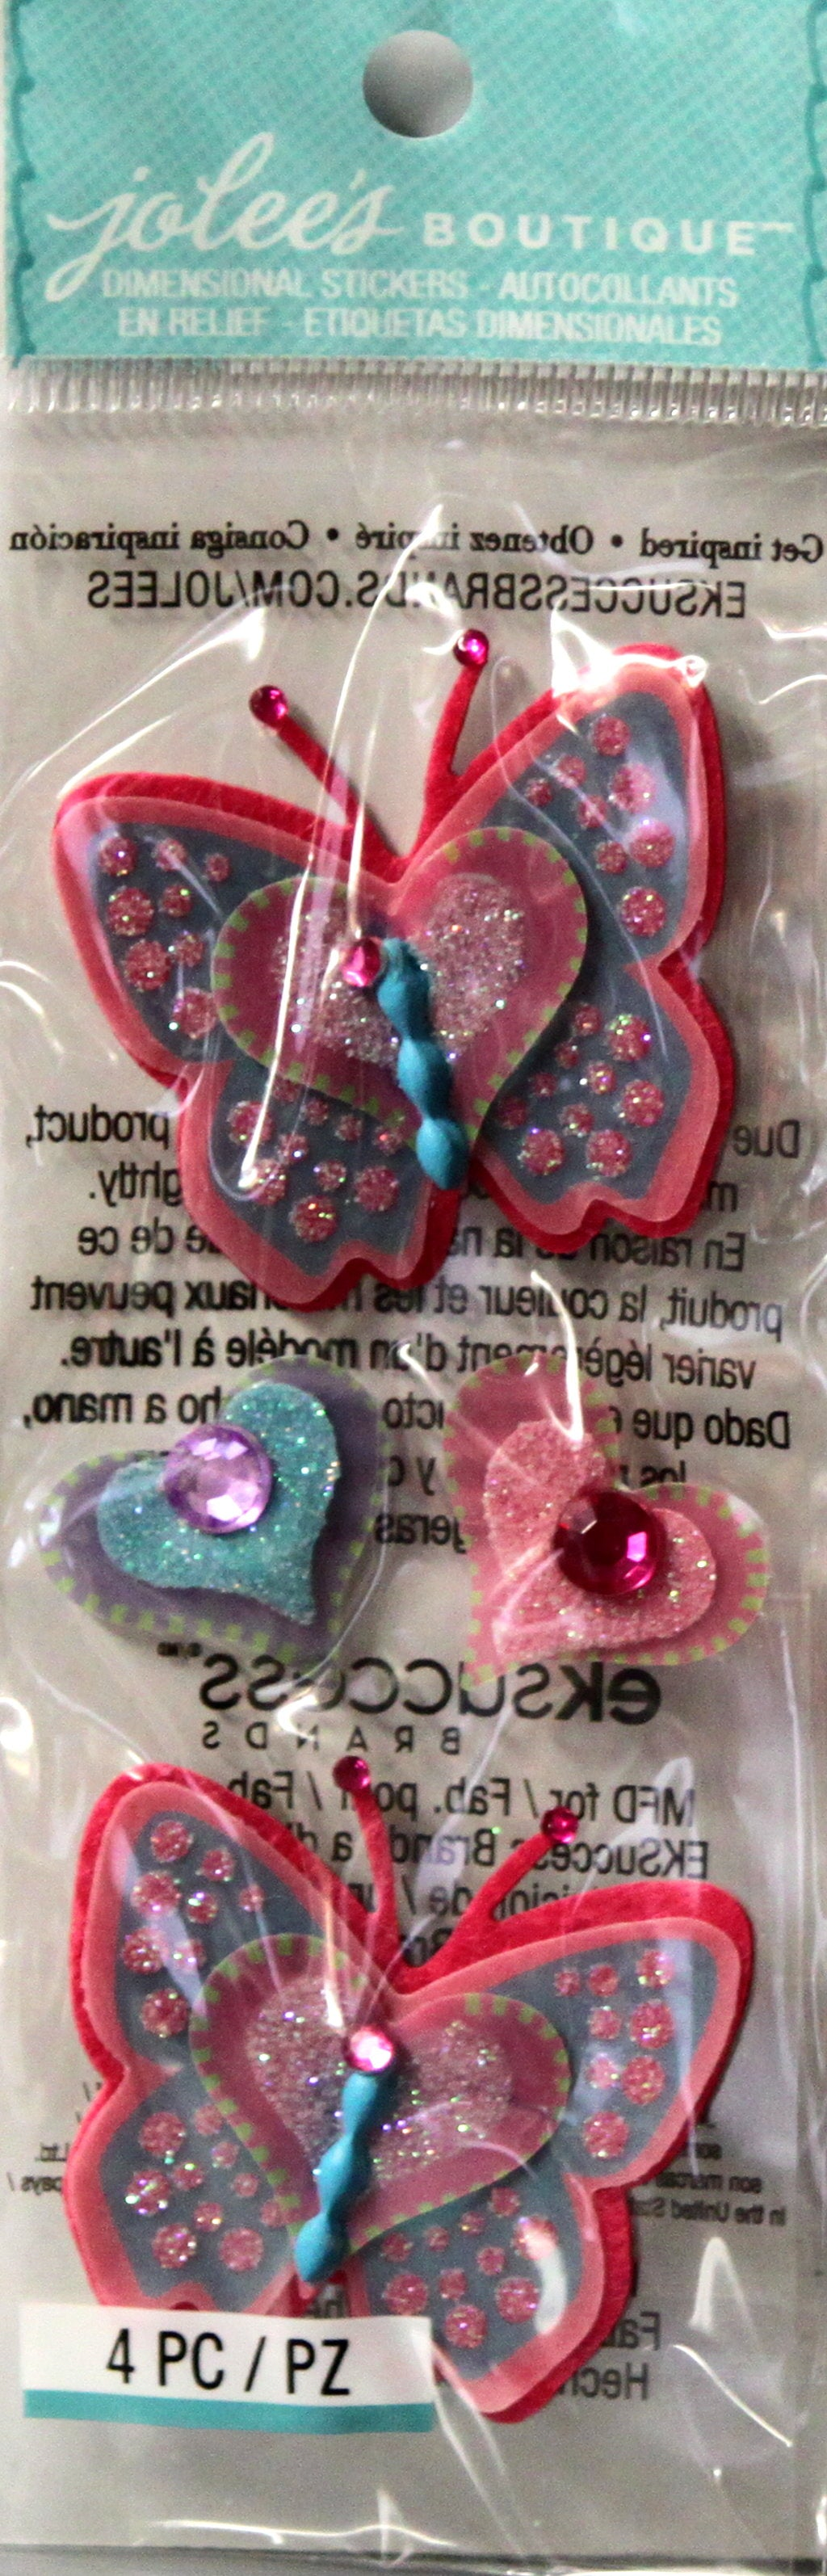 Jolee's Boutique Butterflies Dimensional Stickers Embellishments